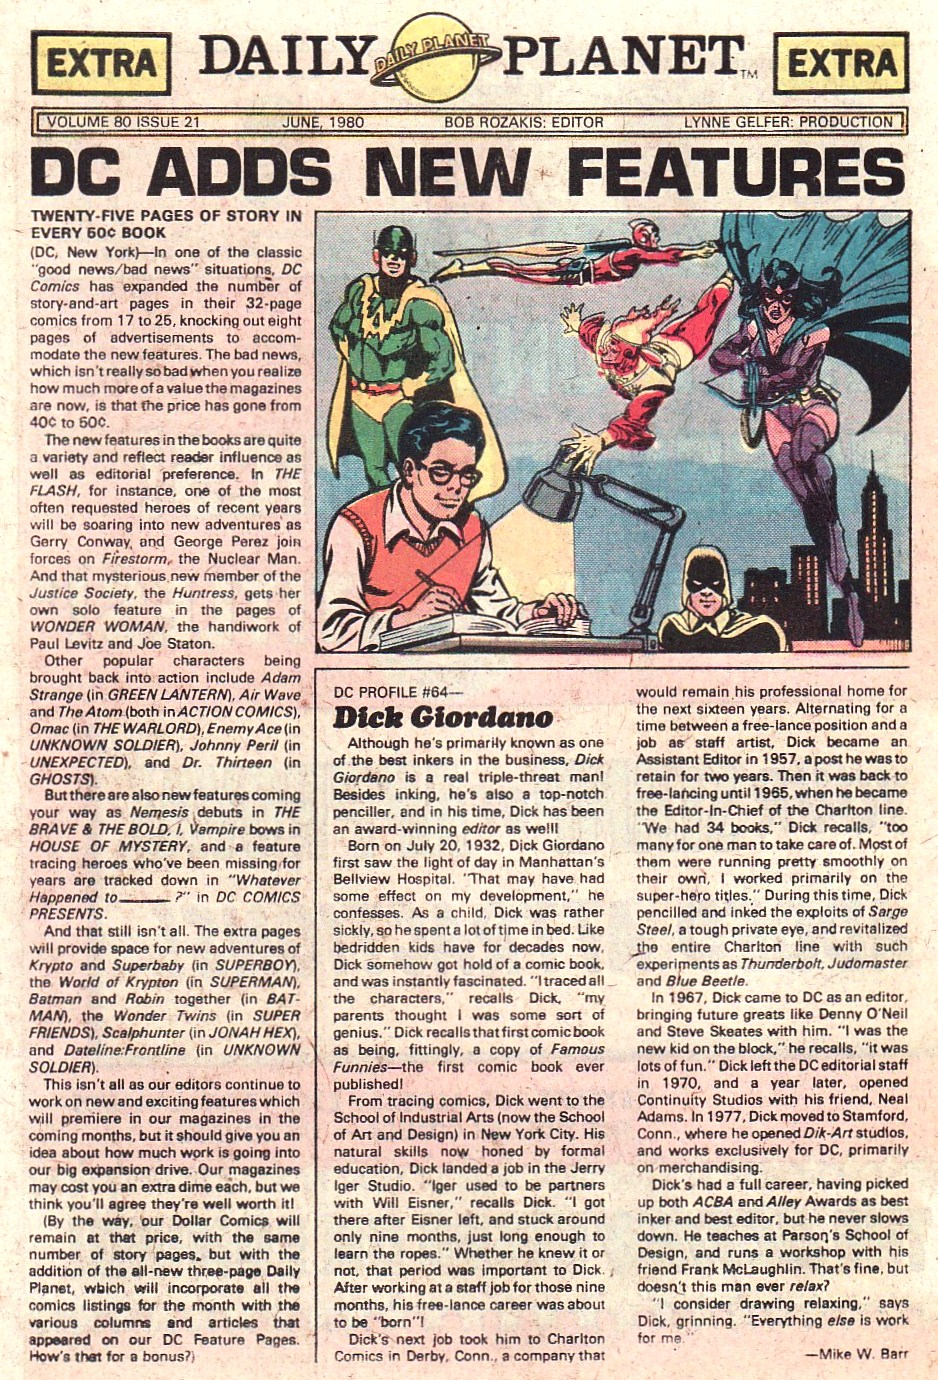 Daily Planet June 1980 featuring Firestorm